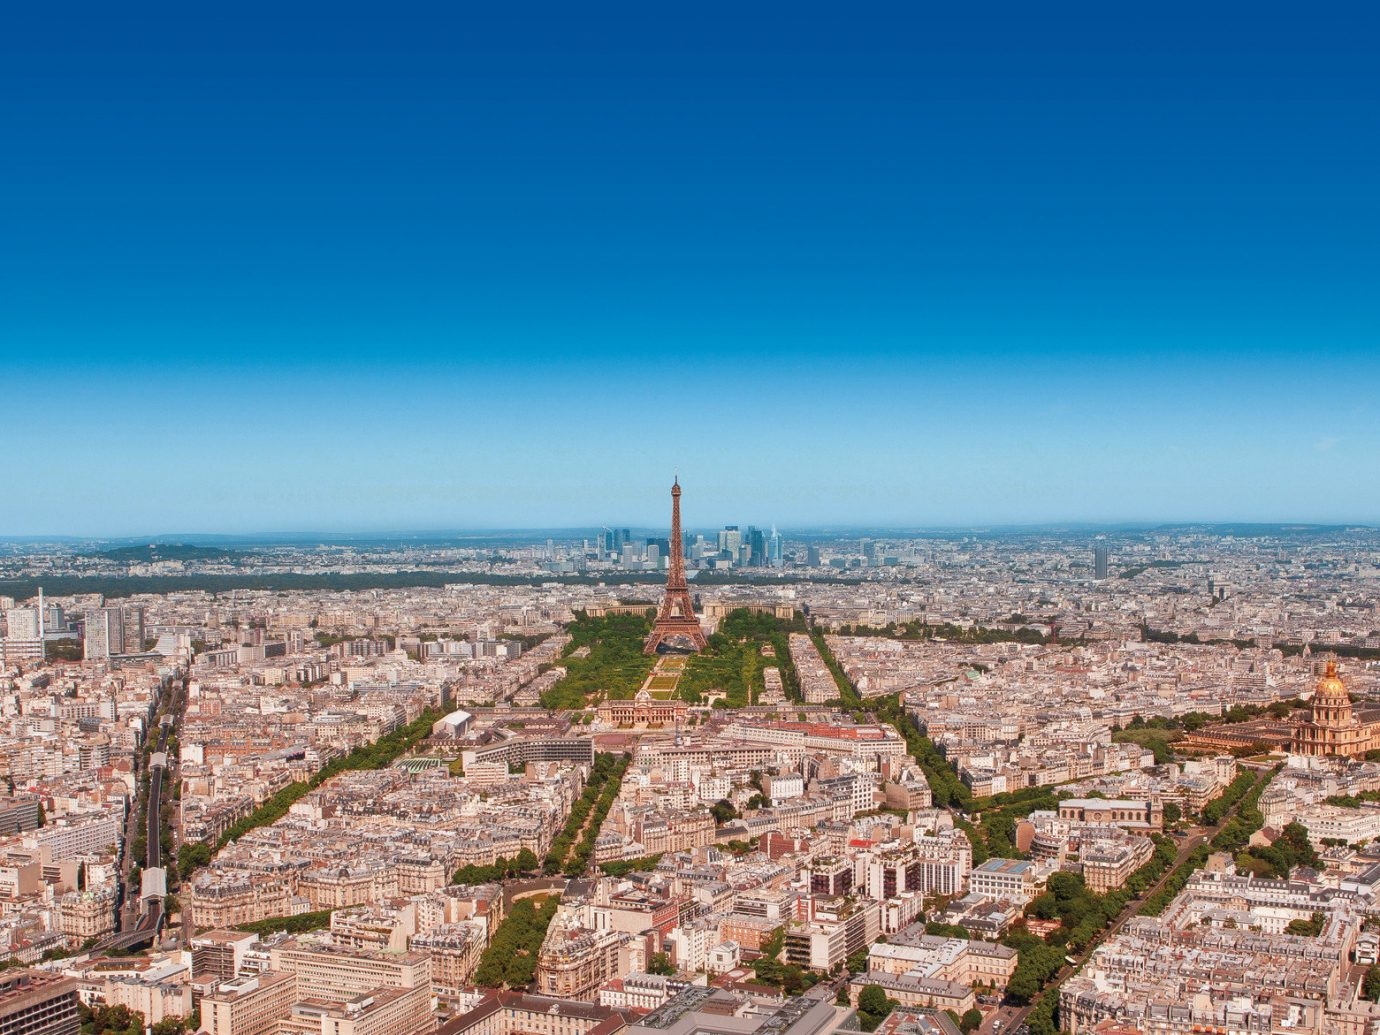 activities attraction City city views eiffel tower europe observation tower tower Trip Ideas view sky outdoor Nature horizon landmark photography Town cityscape human settlement skyline aerial photography tourism Sea Coast skyscraper panorama canyon overlooking shore